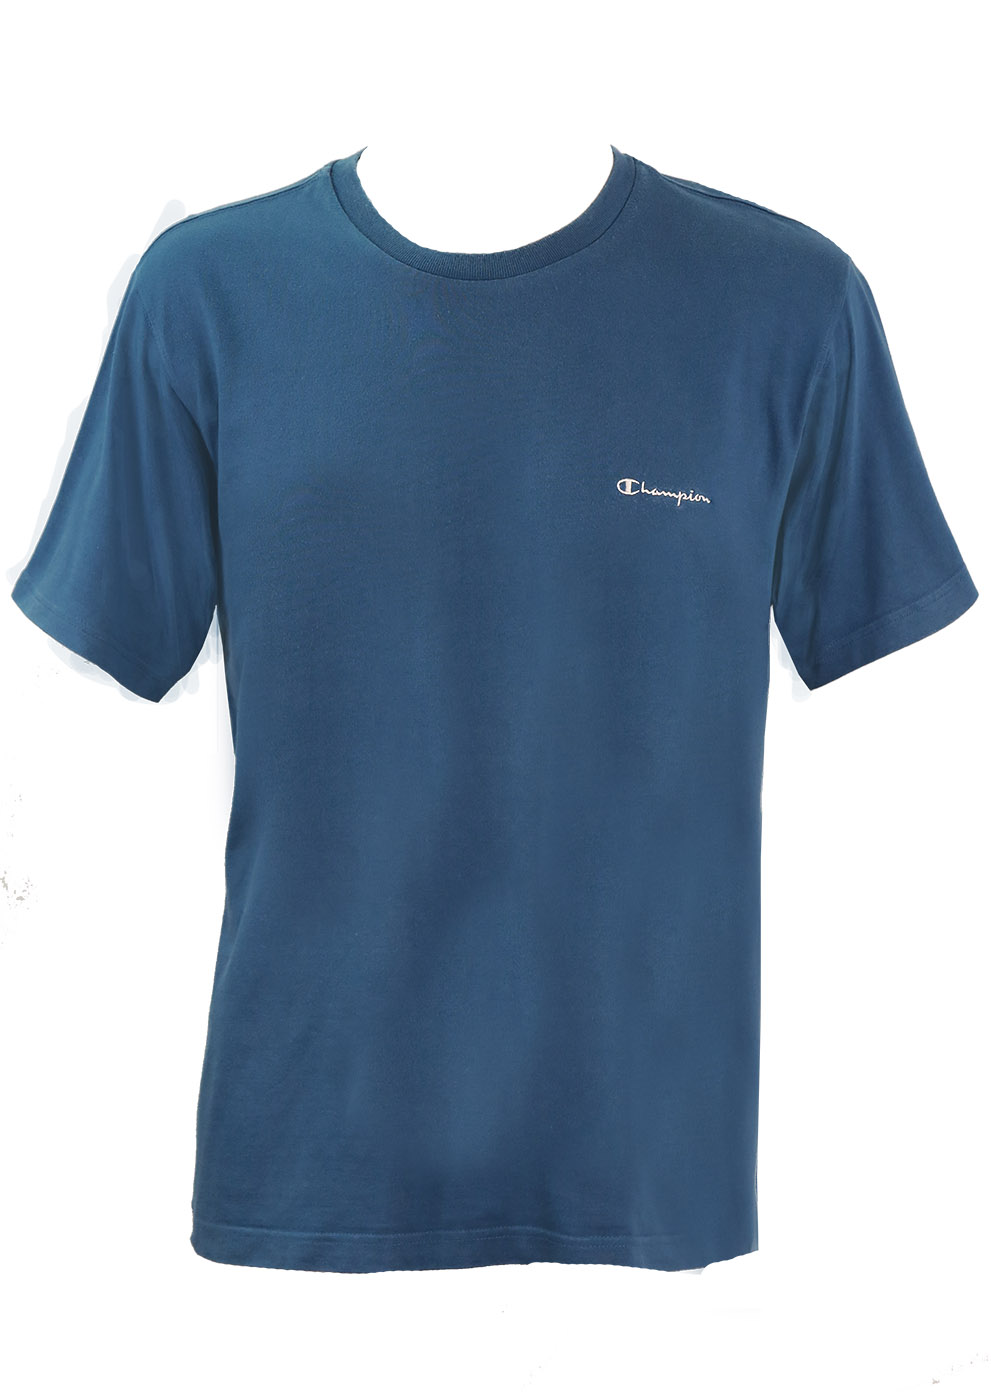 Mid Blue Champion T Shirt With Embroidered Logo M L